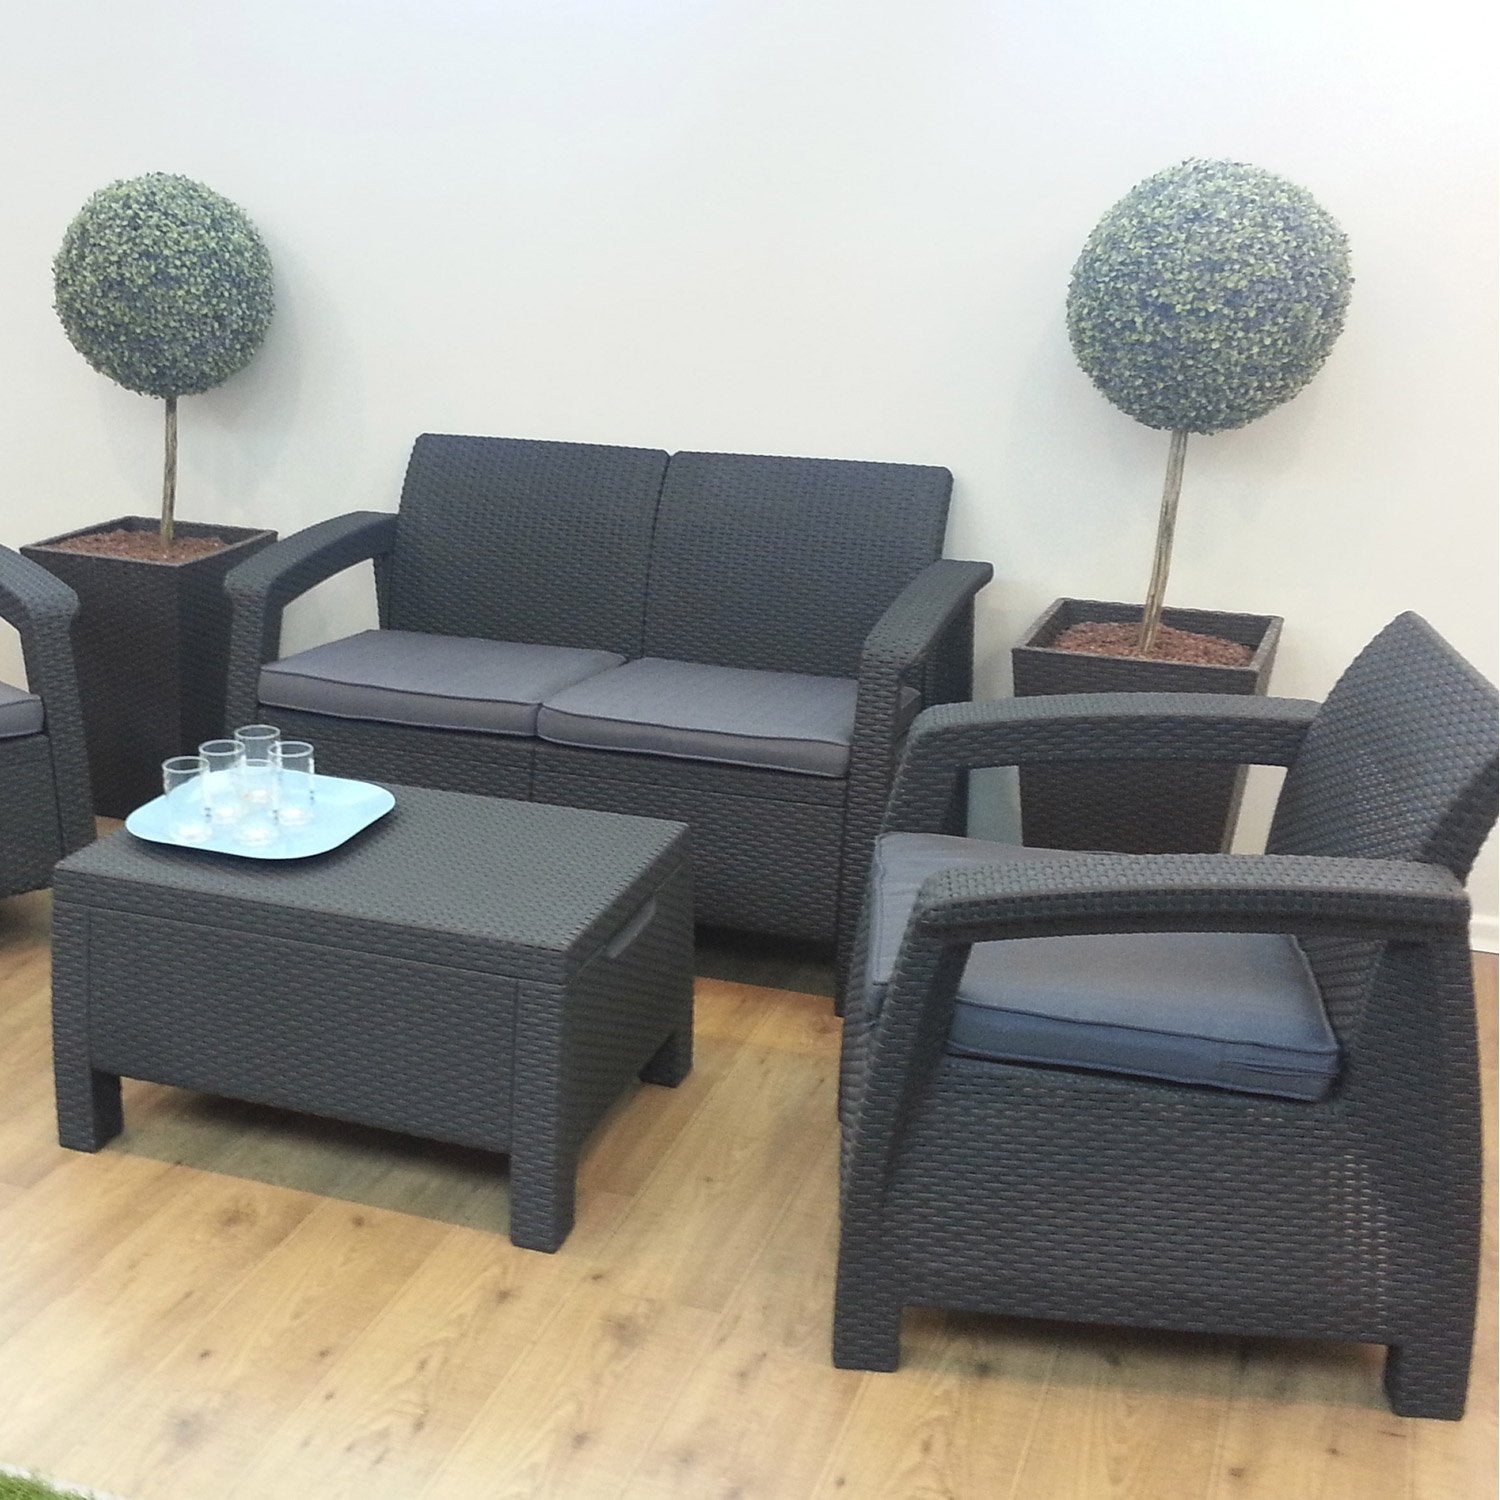 Table et chaise de jardin en plastique carrefour - Salon de jardin allibert new york gris anthracite ...